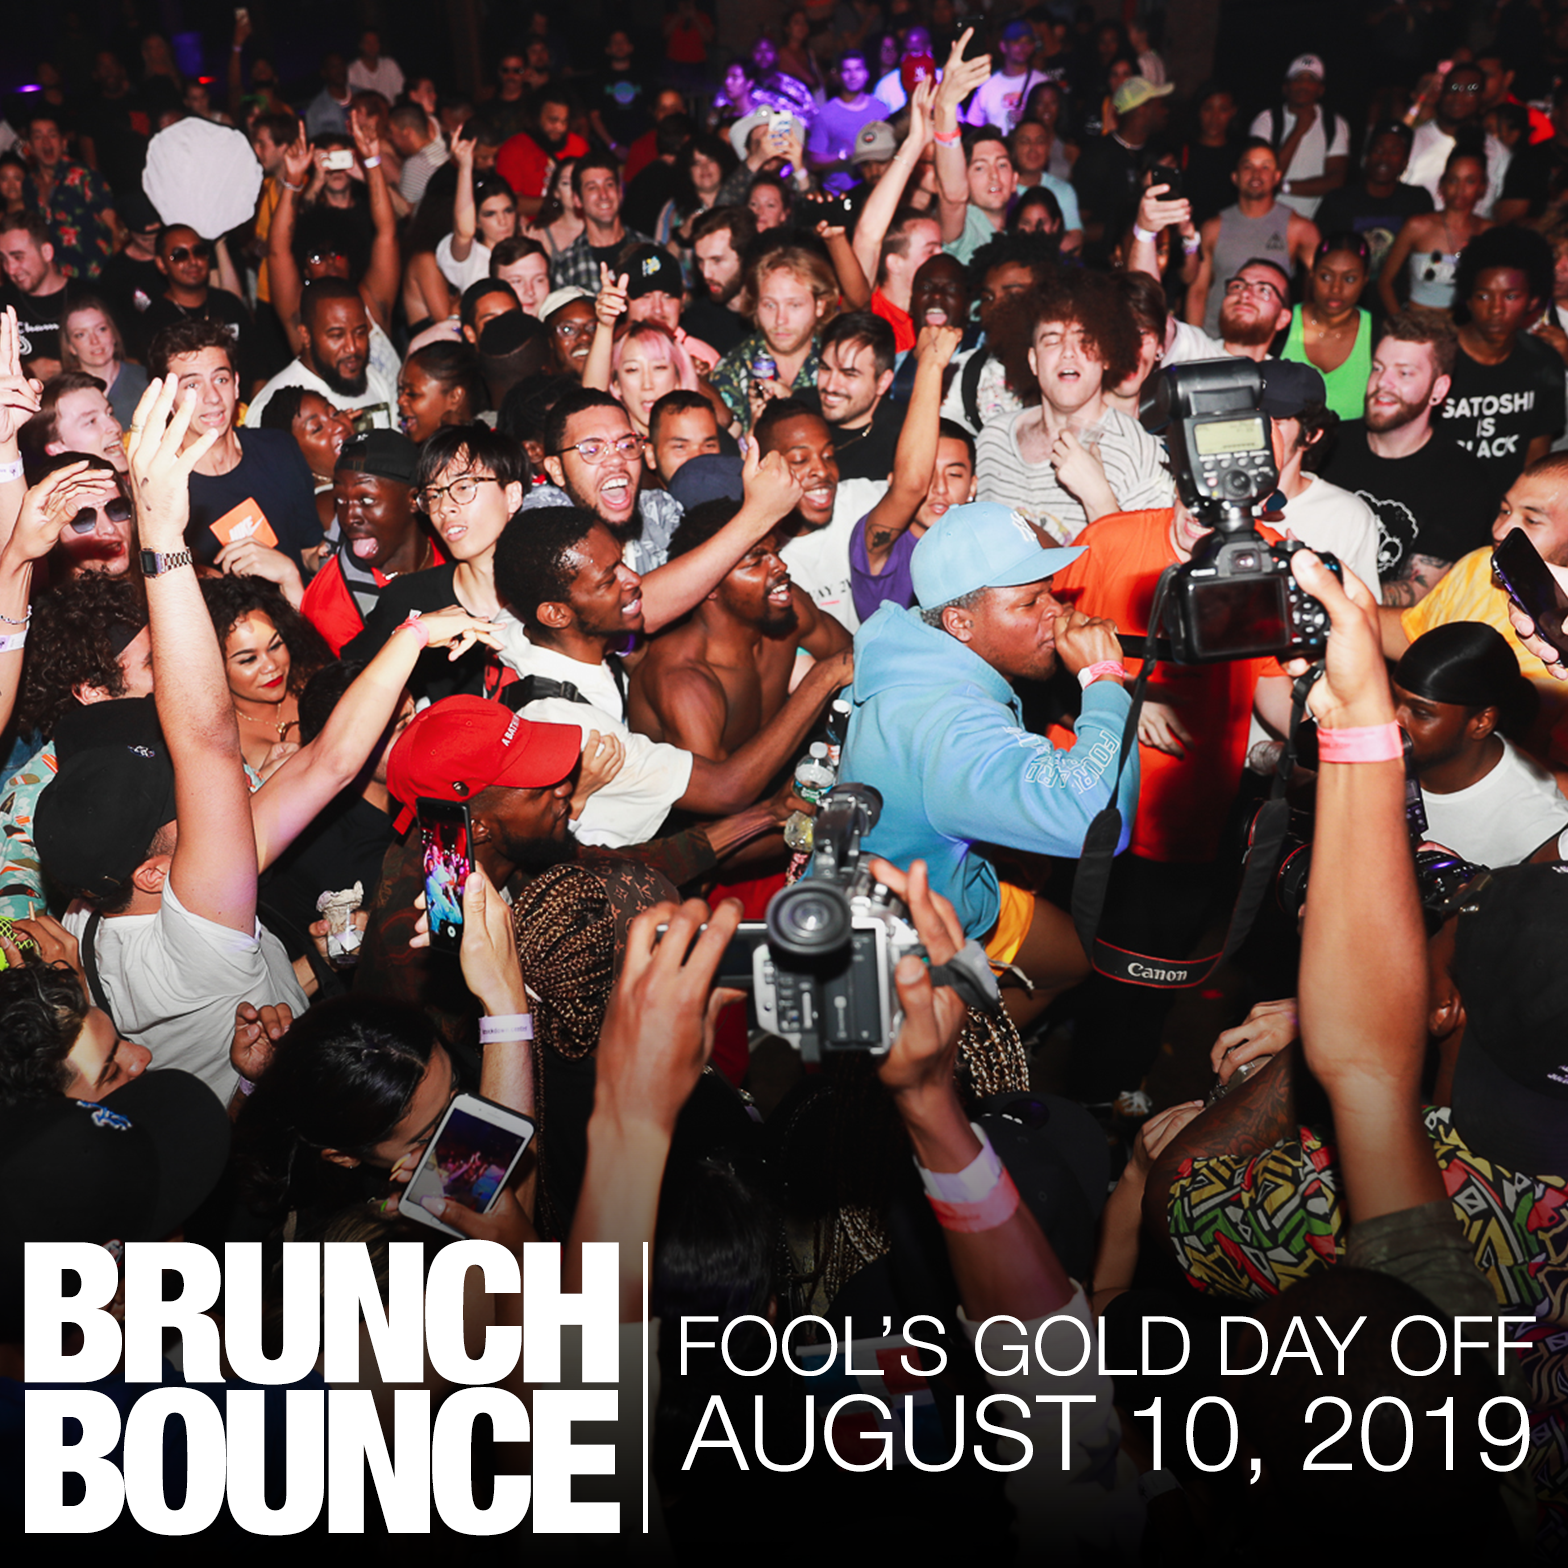 Fool's Gold Day Off August 10, 2019